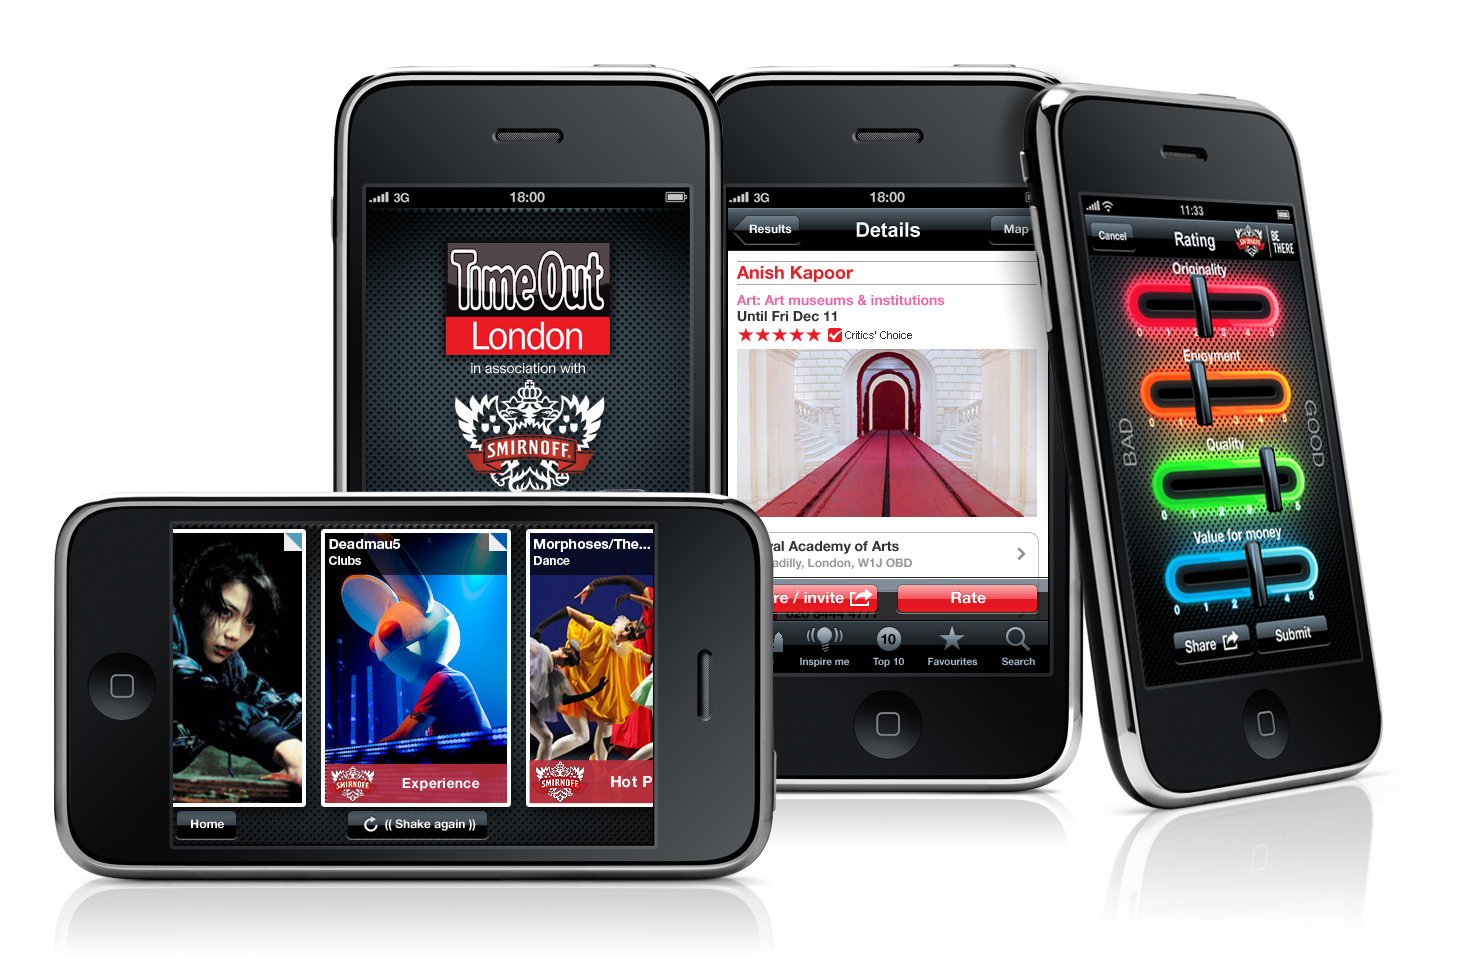 iPhones The New Smirnoff & Time Out iPhone is Set to Transform Londoners Social Lives